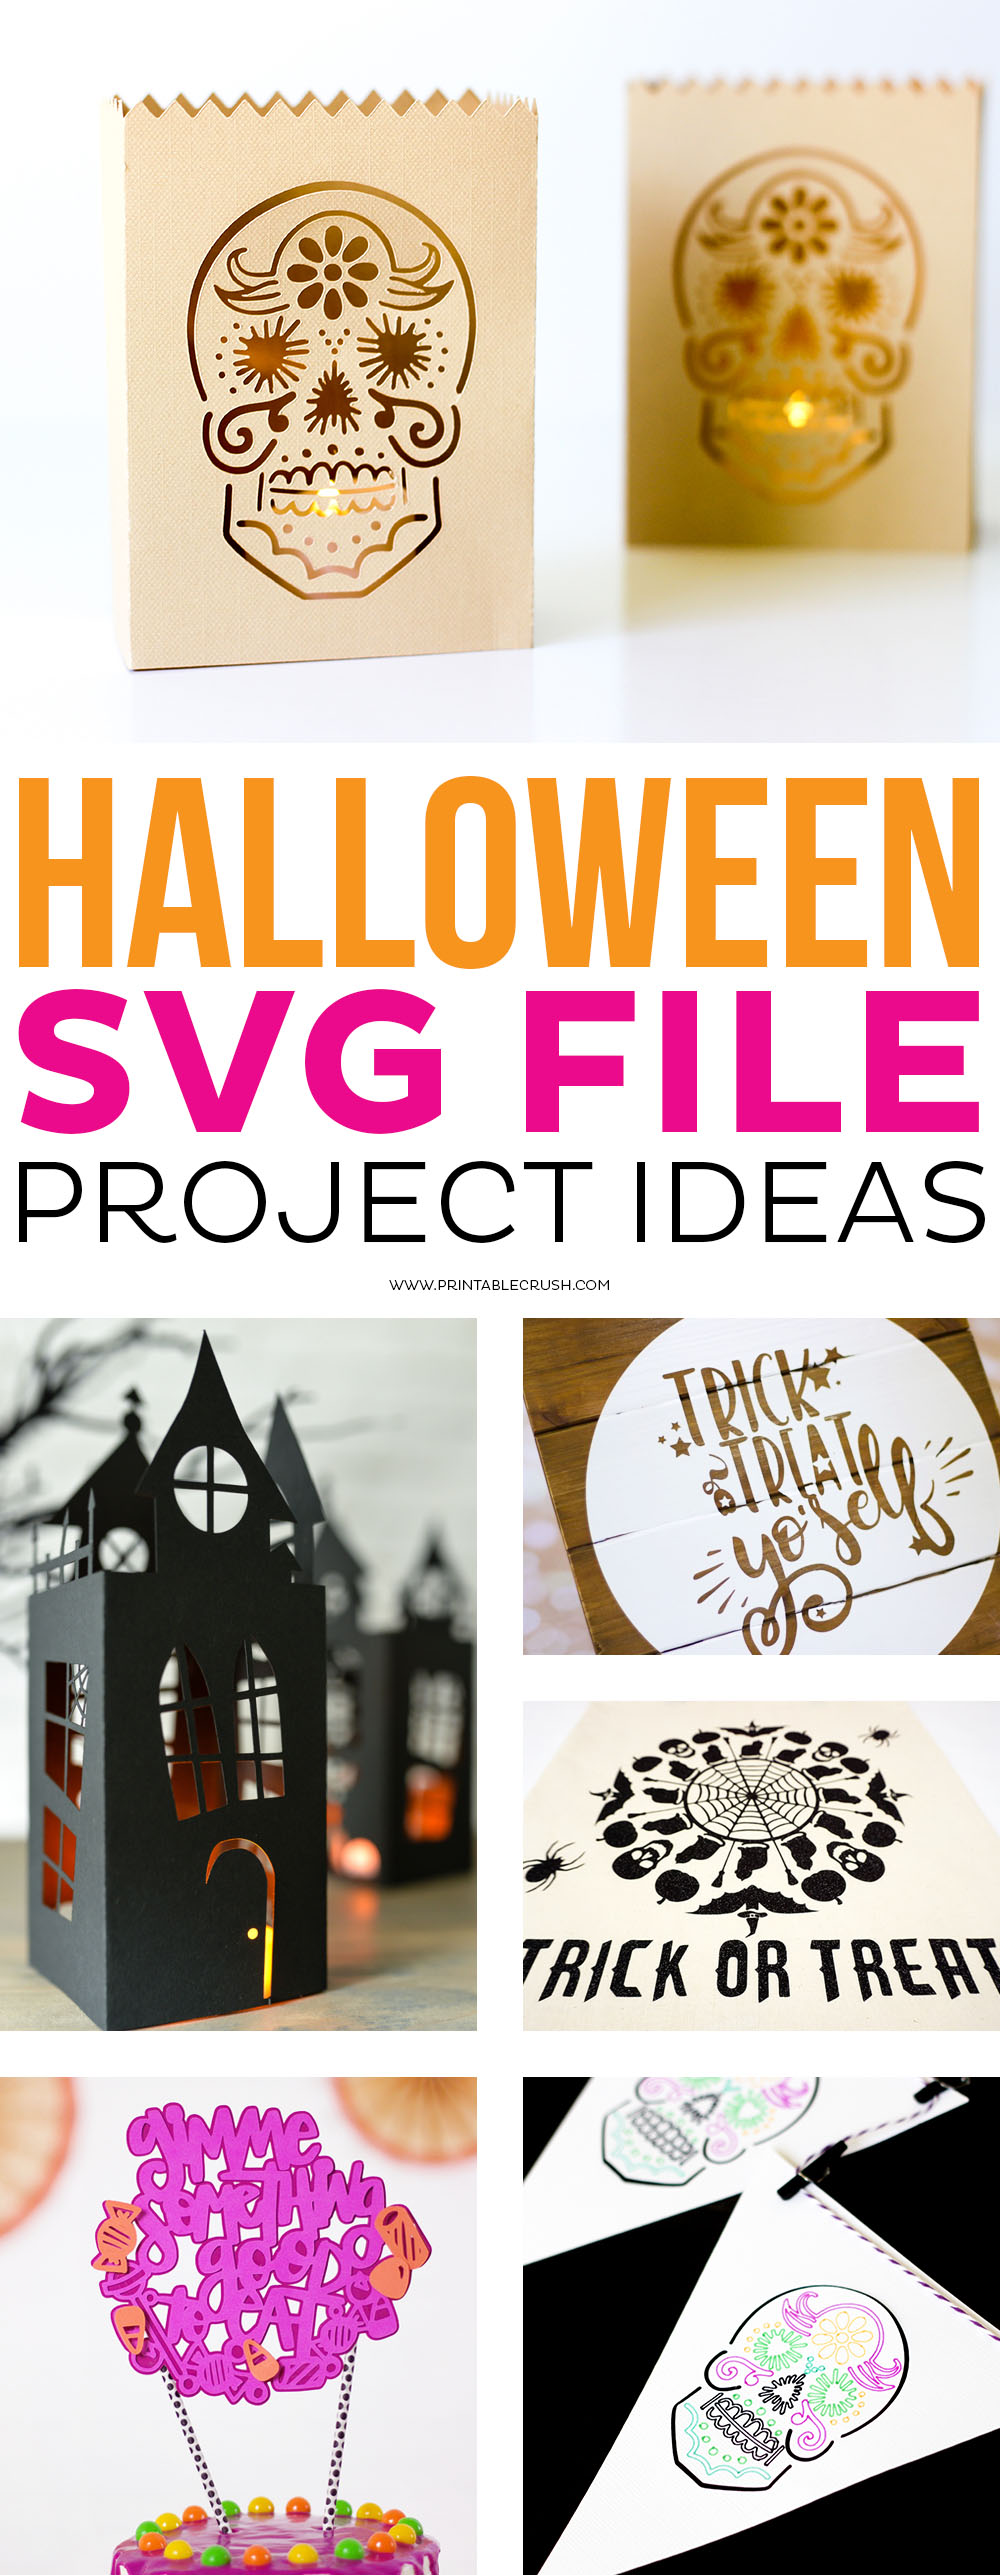 See fun Halloween SVG File Project ideas to help you get ready for Halloween! We've got you covered in Halloween home decor, party ideas, and more!